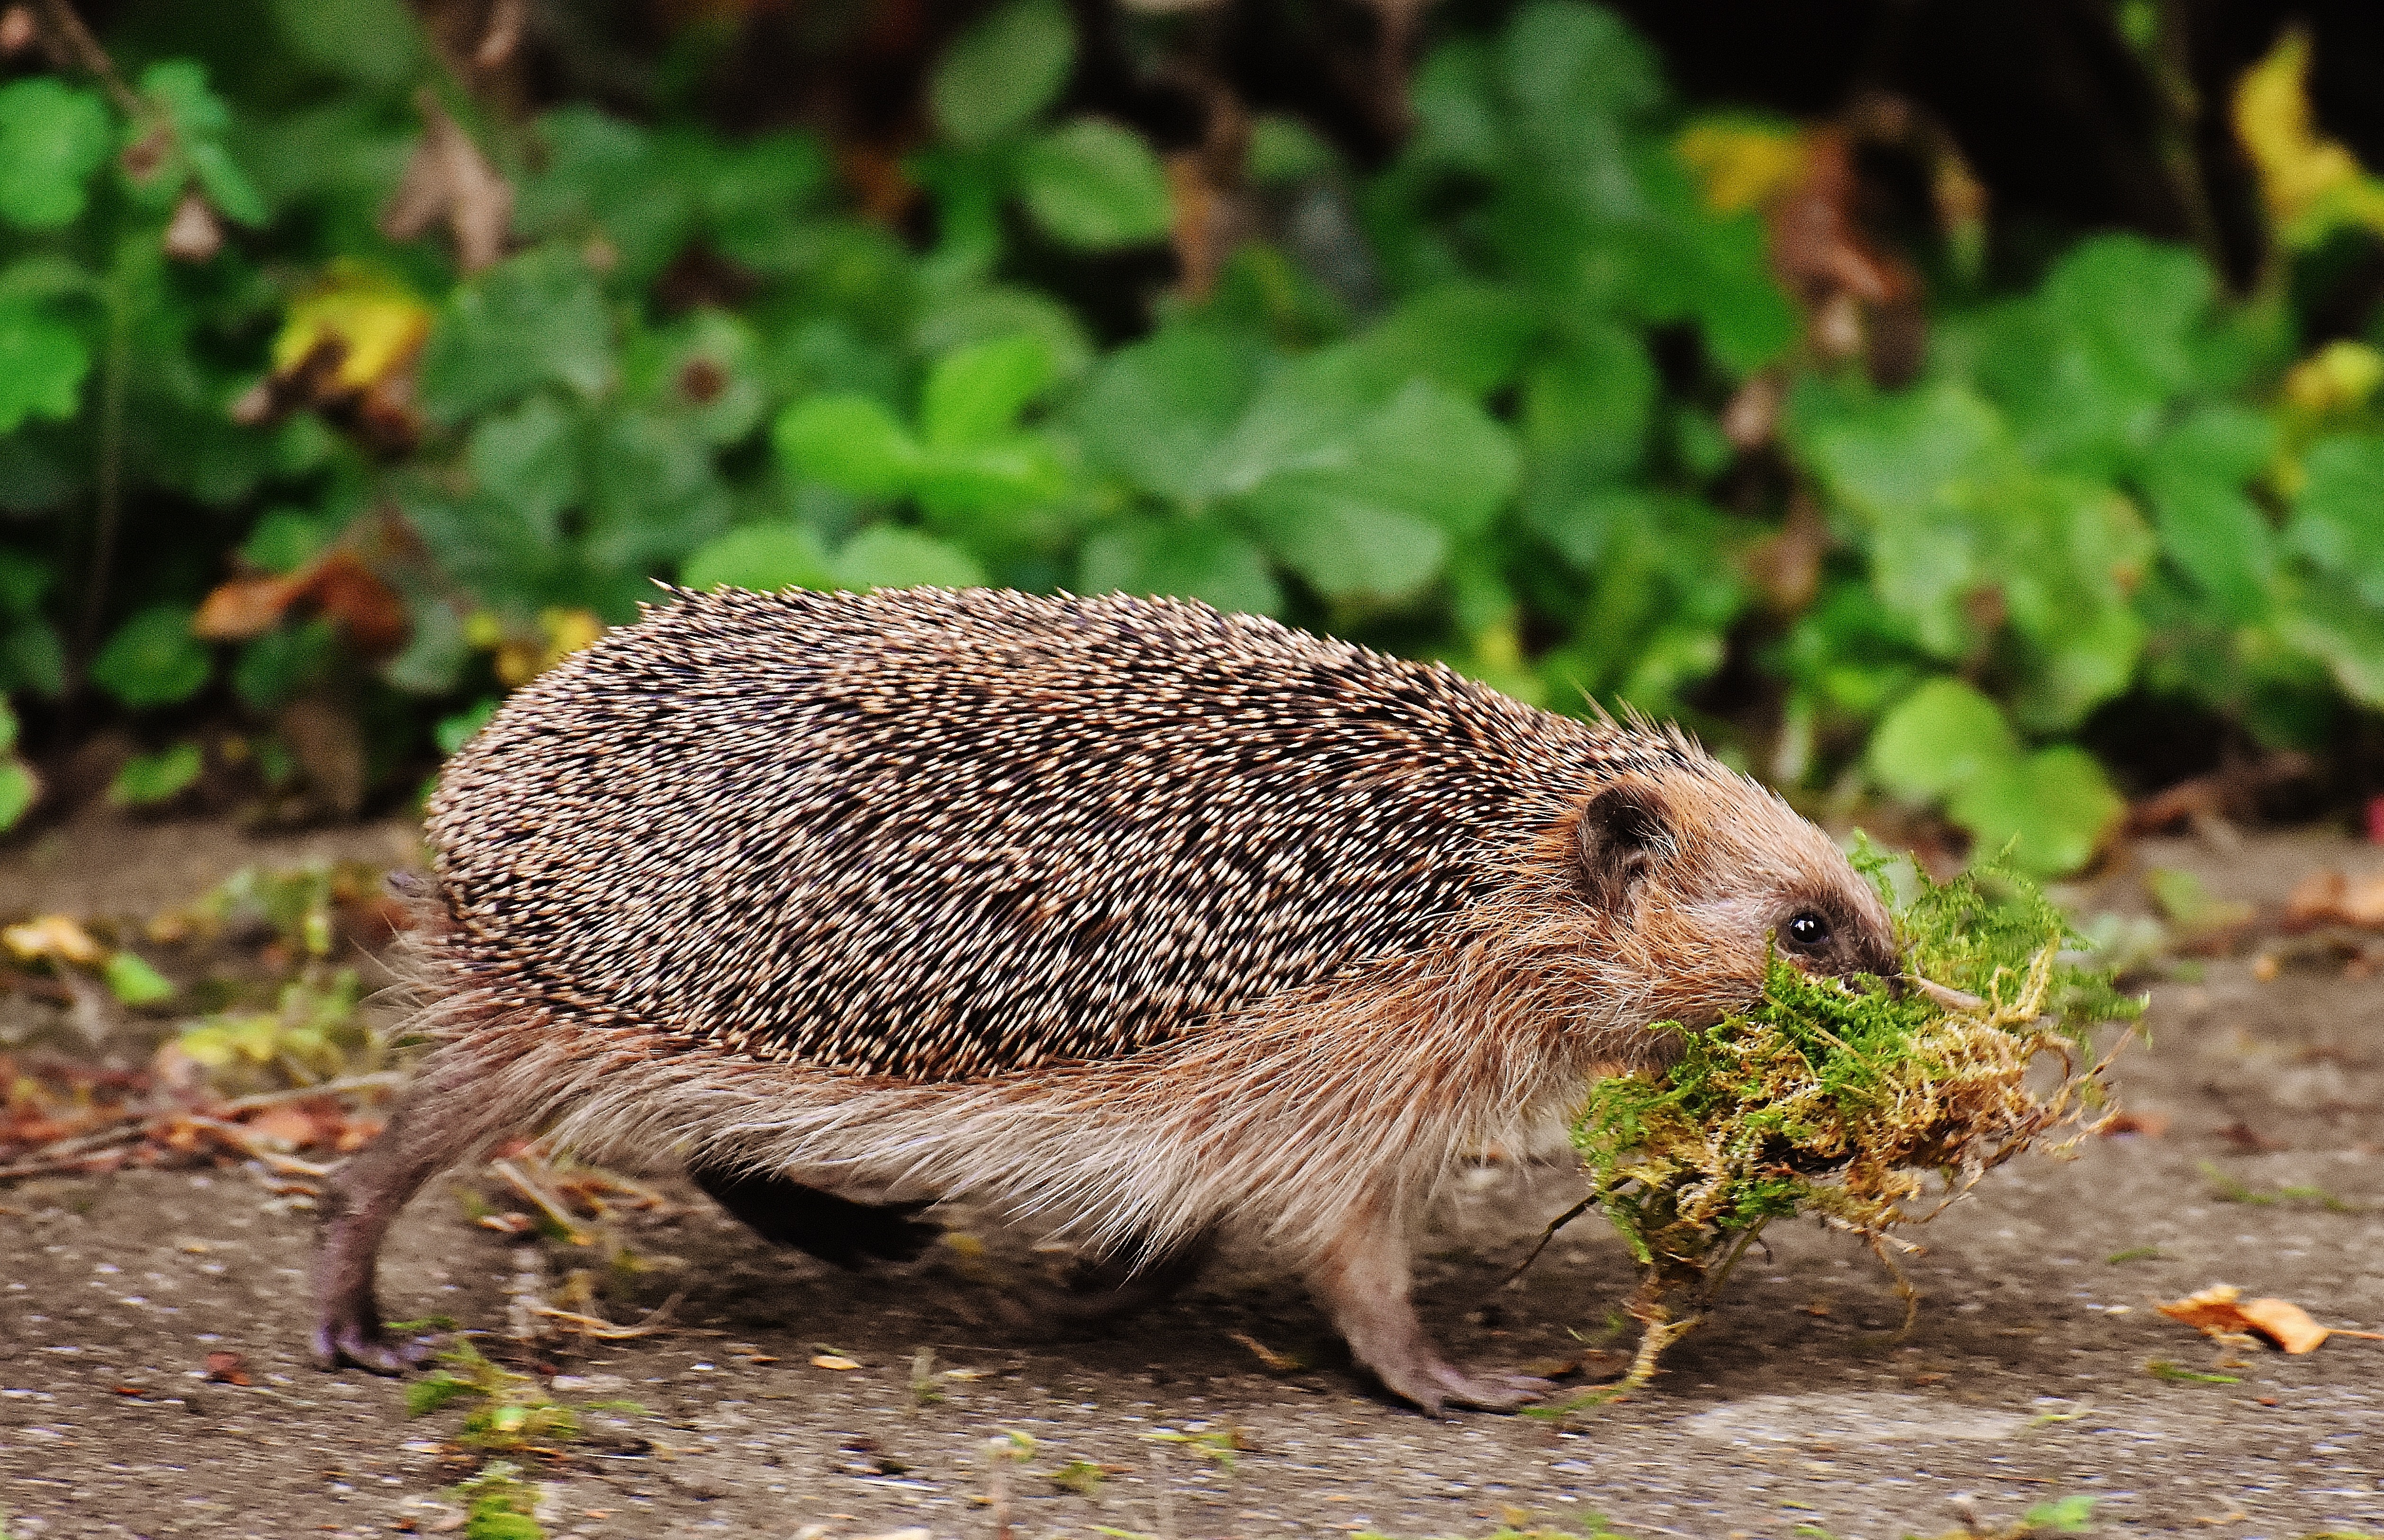 61758 download wallpaper Animals, Hedgehog, Moss, Stroll, Thorns, Prickles screensavers and pictures for free